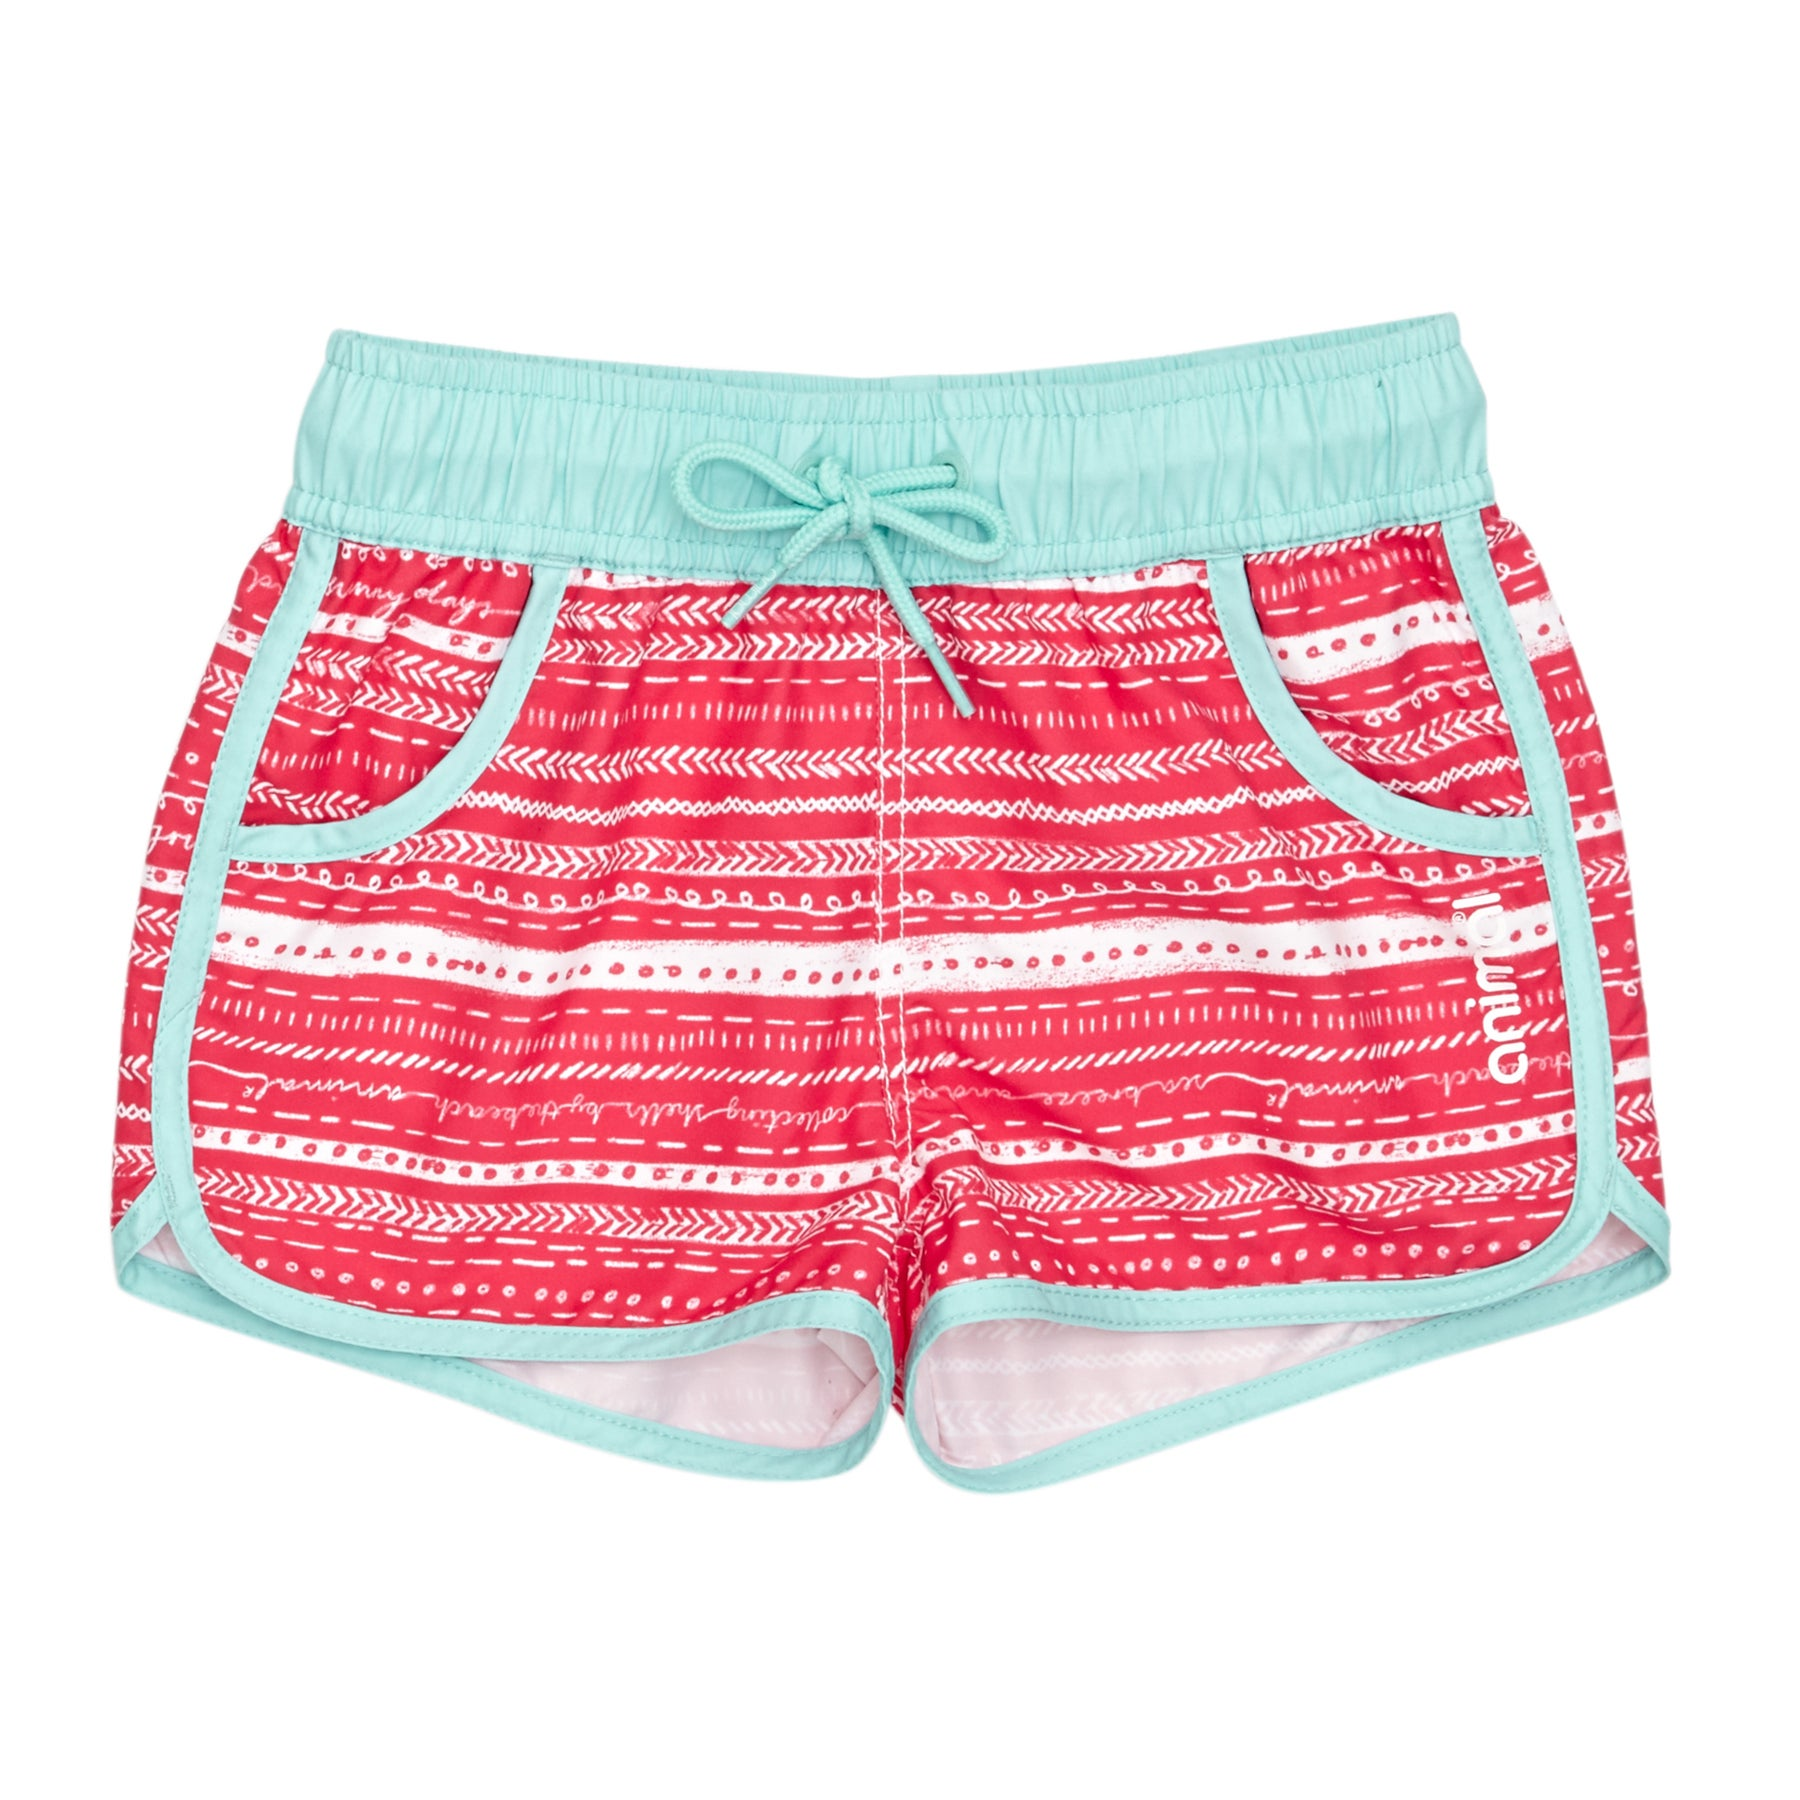 Animal Cali Dreamer Girls Boardshorts - Petunia Pink